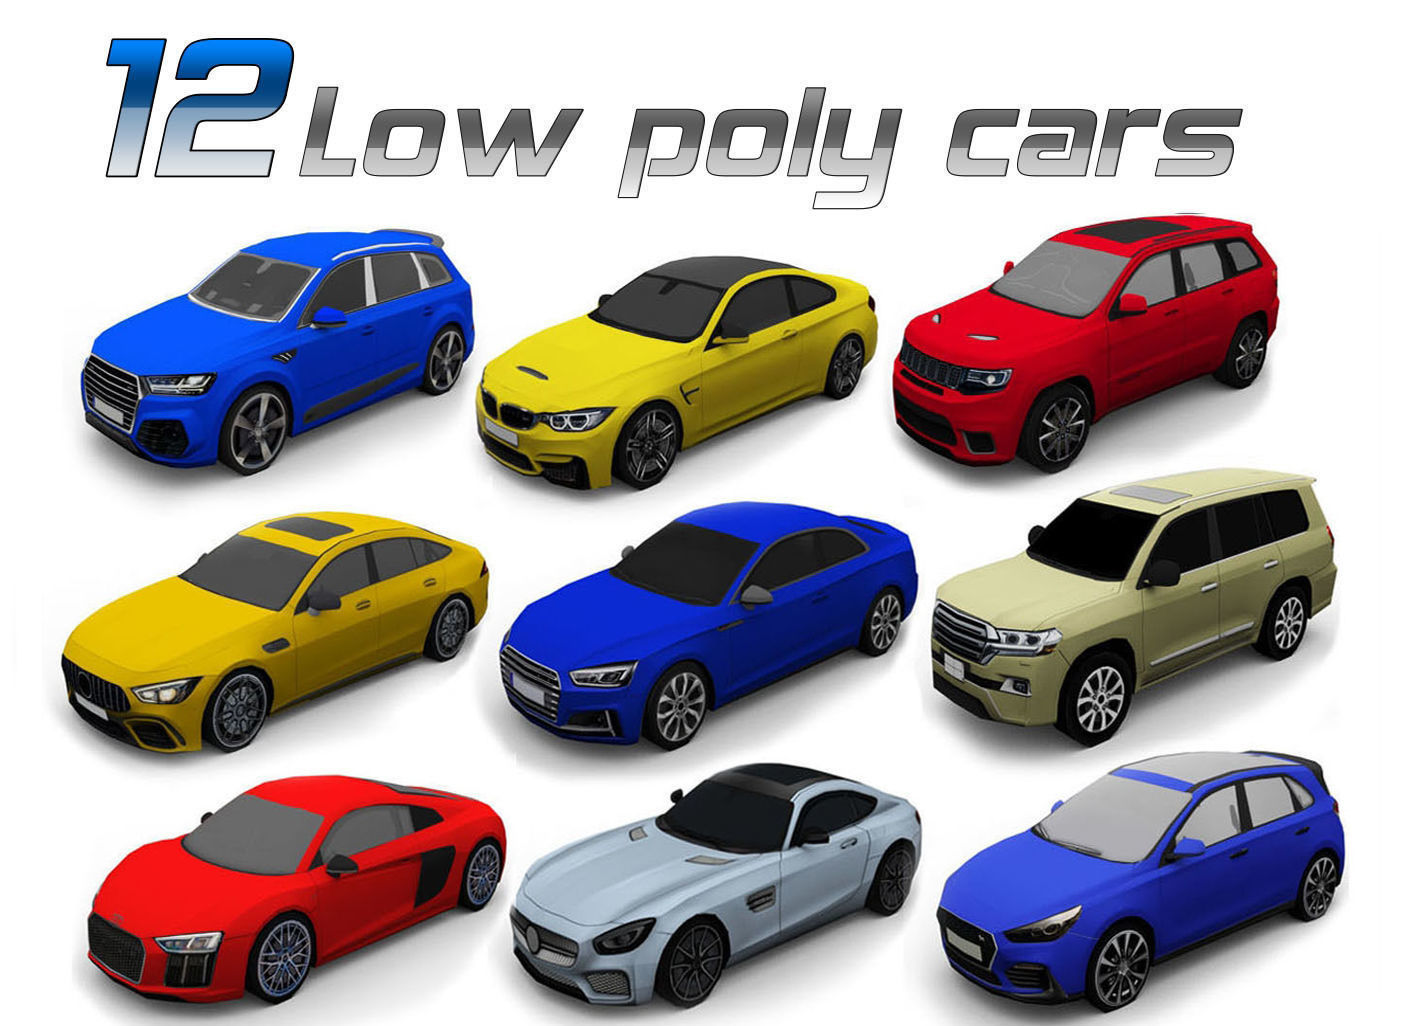 12 Low poly cars 3D model